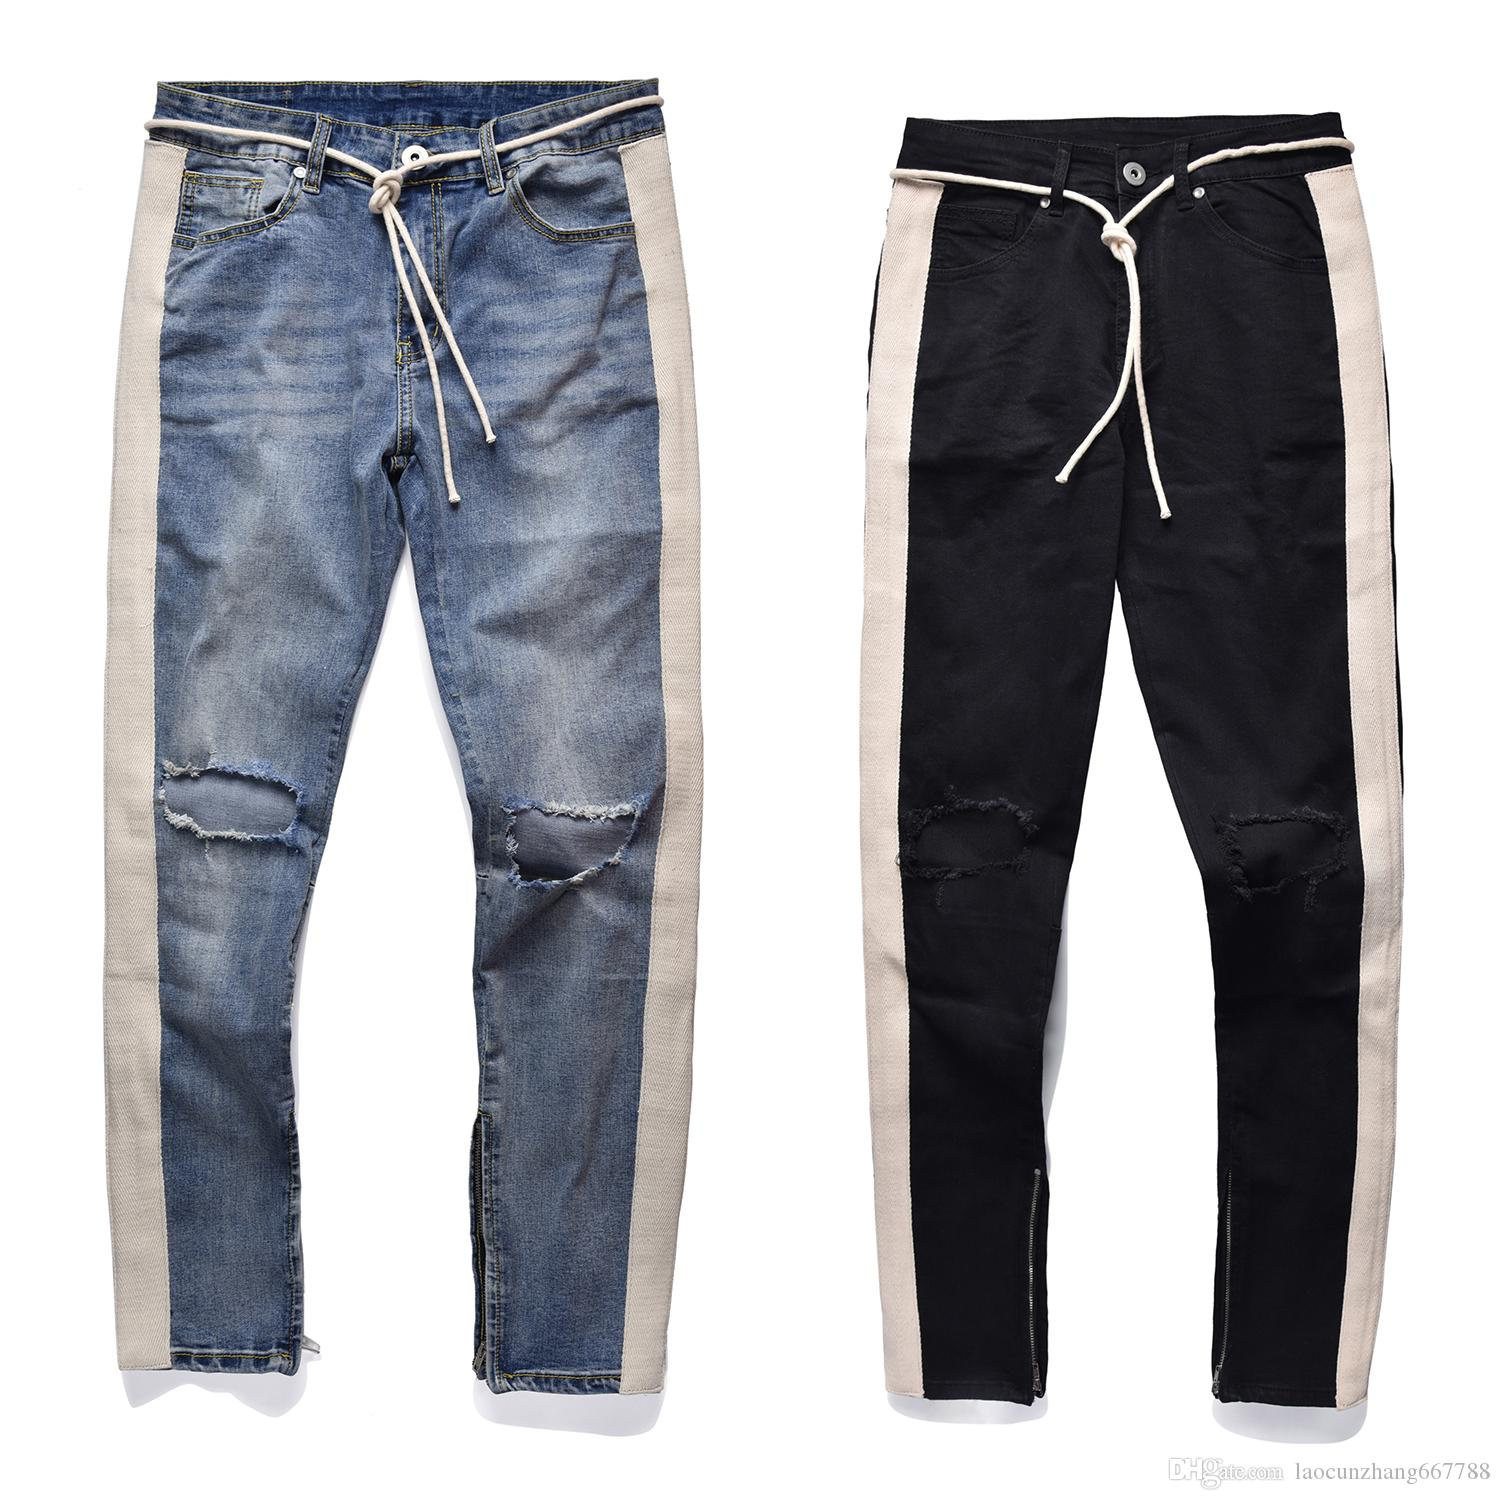 5a0e3998041713 2019 Black Icon 2018 RETRO DENIM BLUE Black Men Hole Jeans Ripped Destroyed  Men Jeans Hip Hop White Stripe Stitching Bottom Side Zipper Jeans From ...